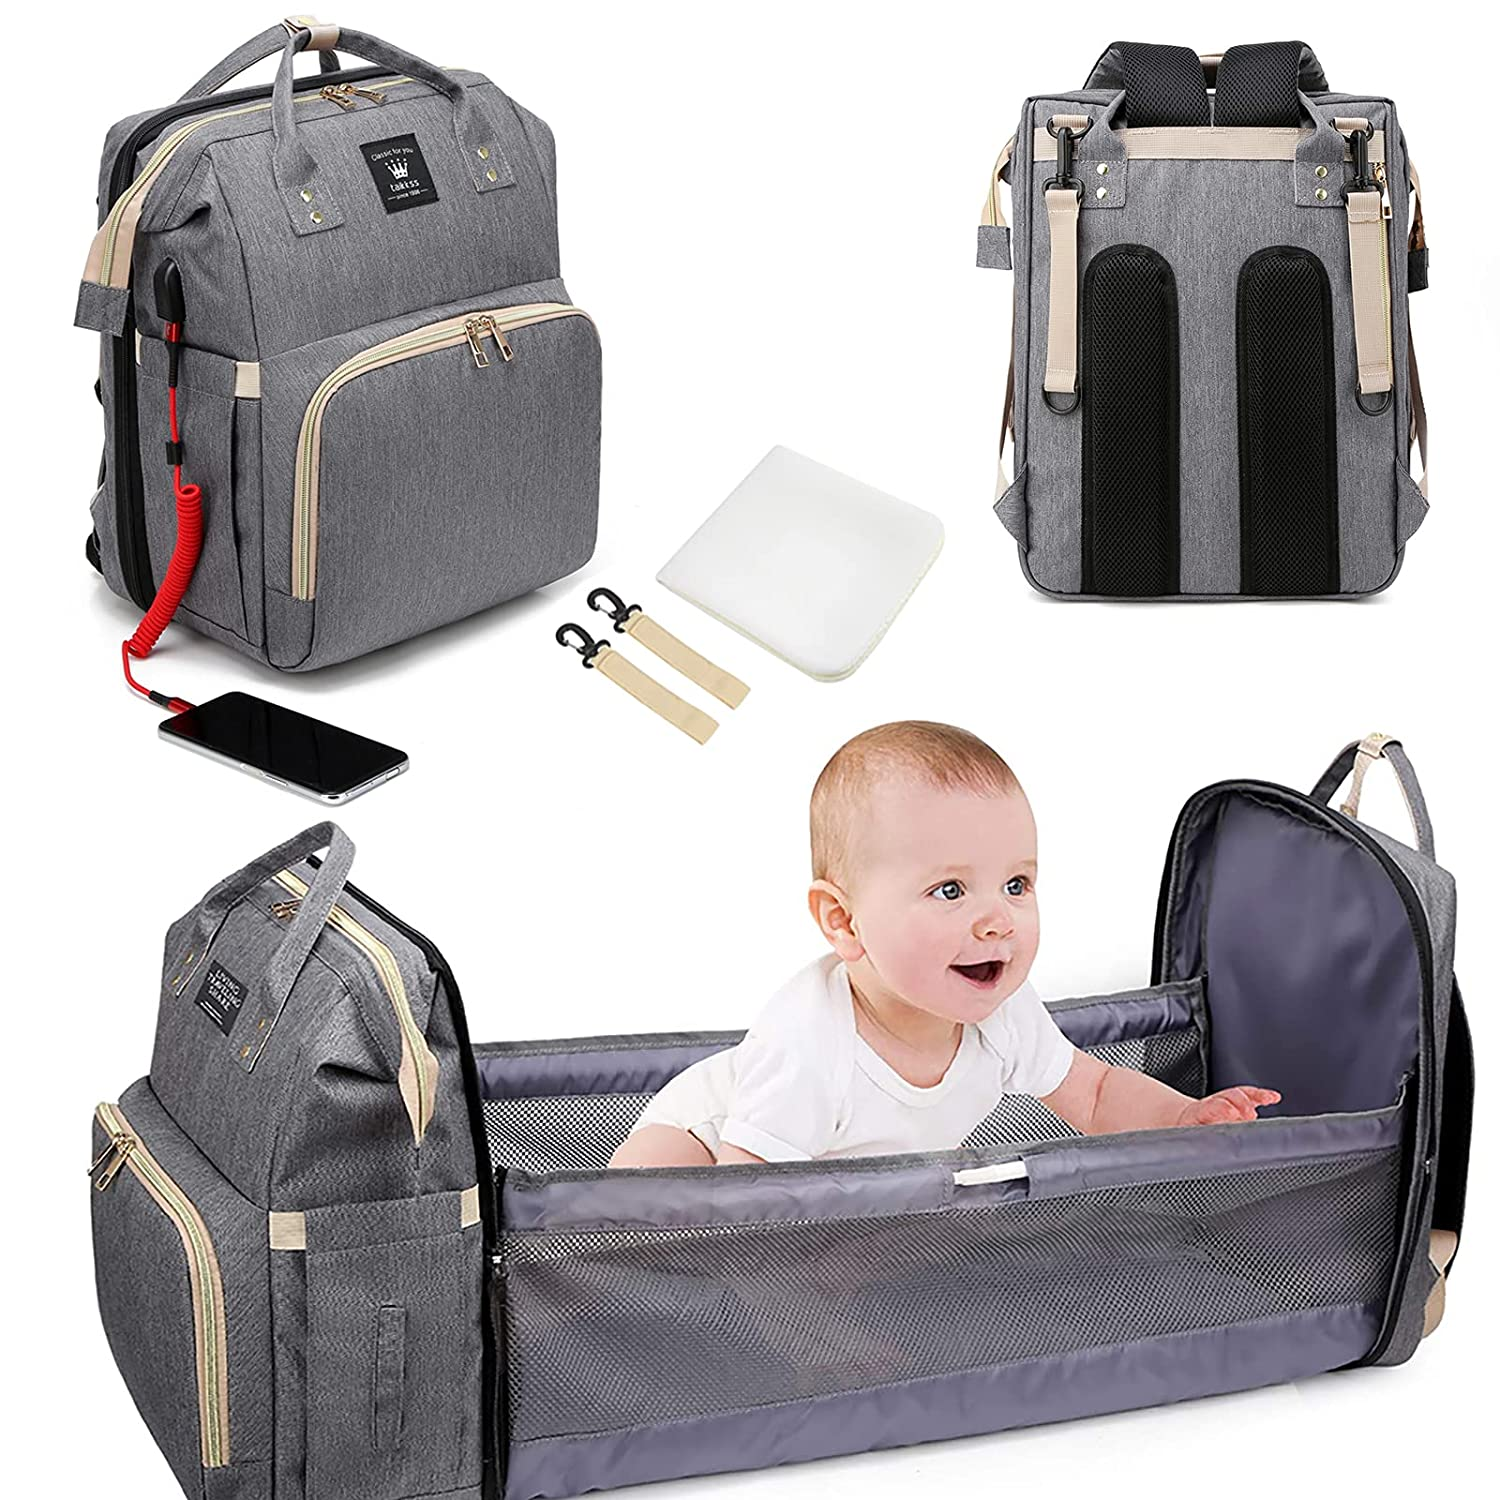 Backpack Diaper Bag for Baby boy with Changing Station,Large Capacity Waterproof Expandable Lightweight Baby Bag with USB Charging Port for Dad Mom (Grey)